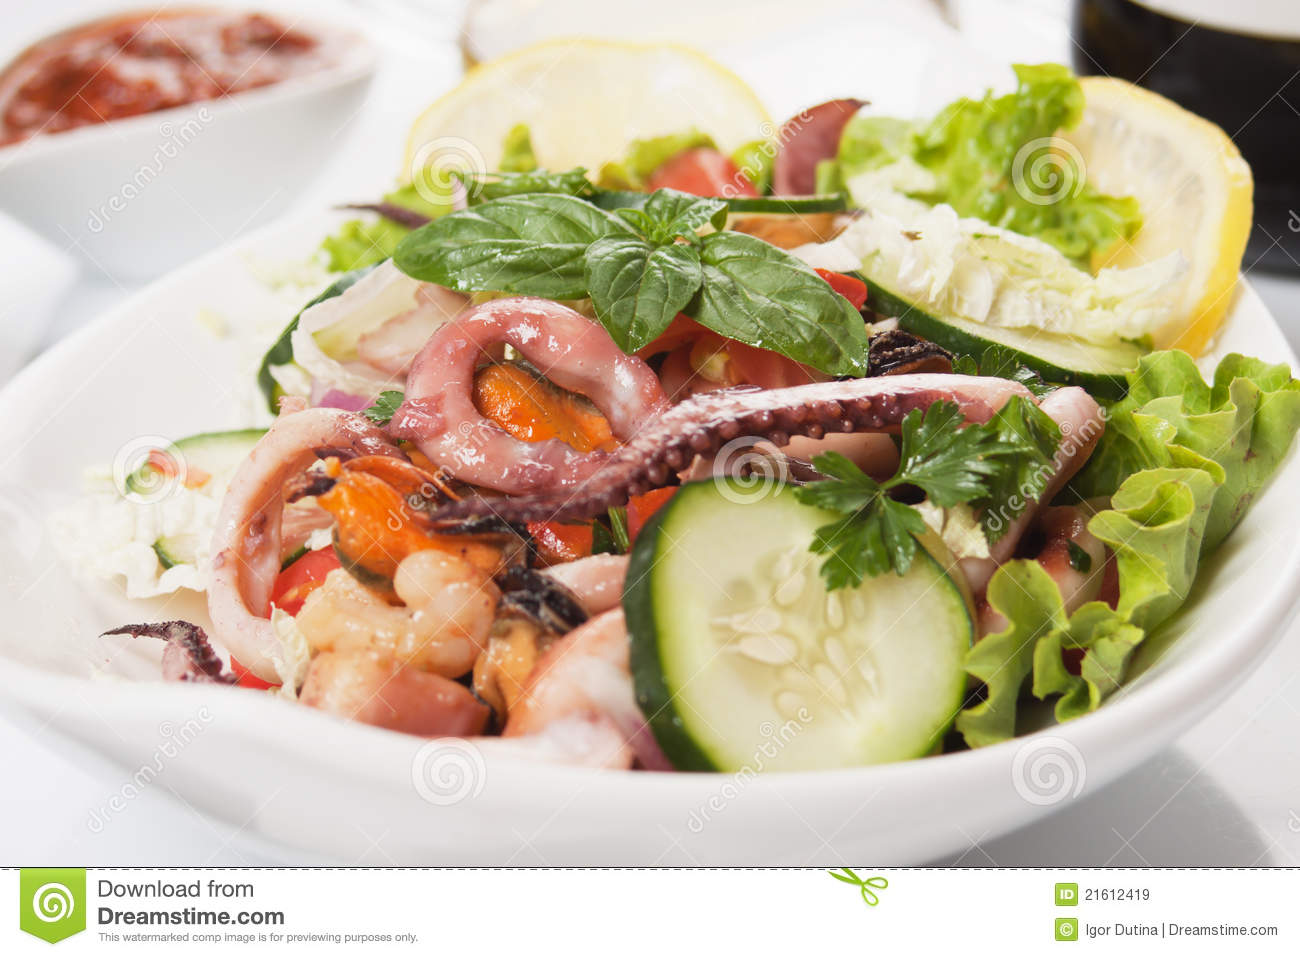 Seafood salad with squid, shrimp, mussel, and fresh vegetable.